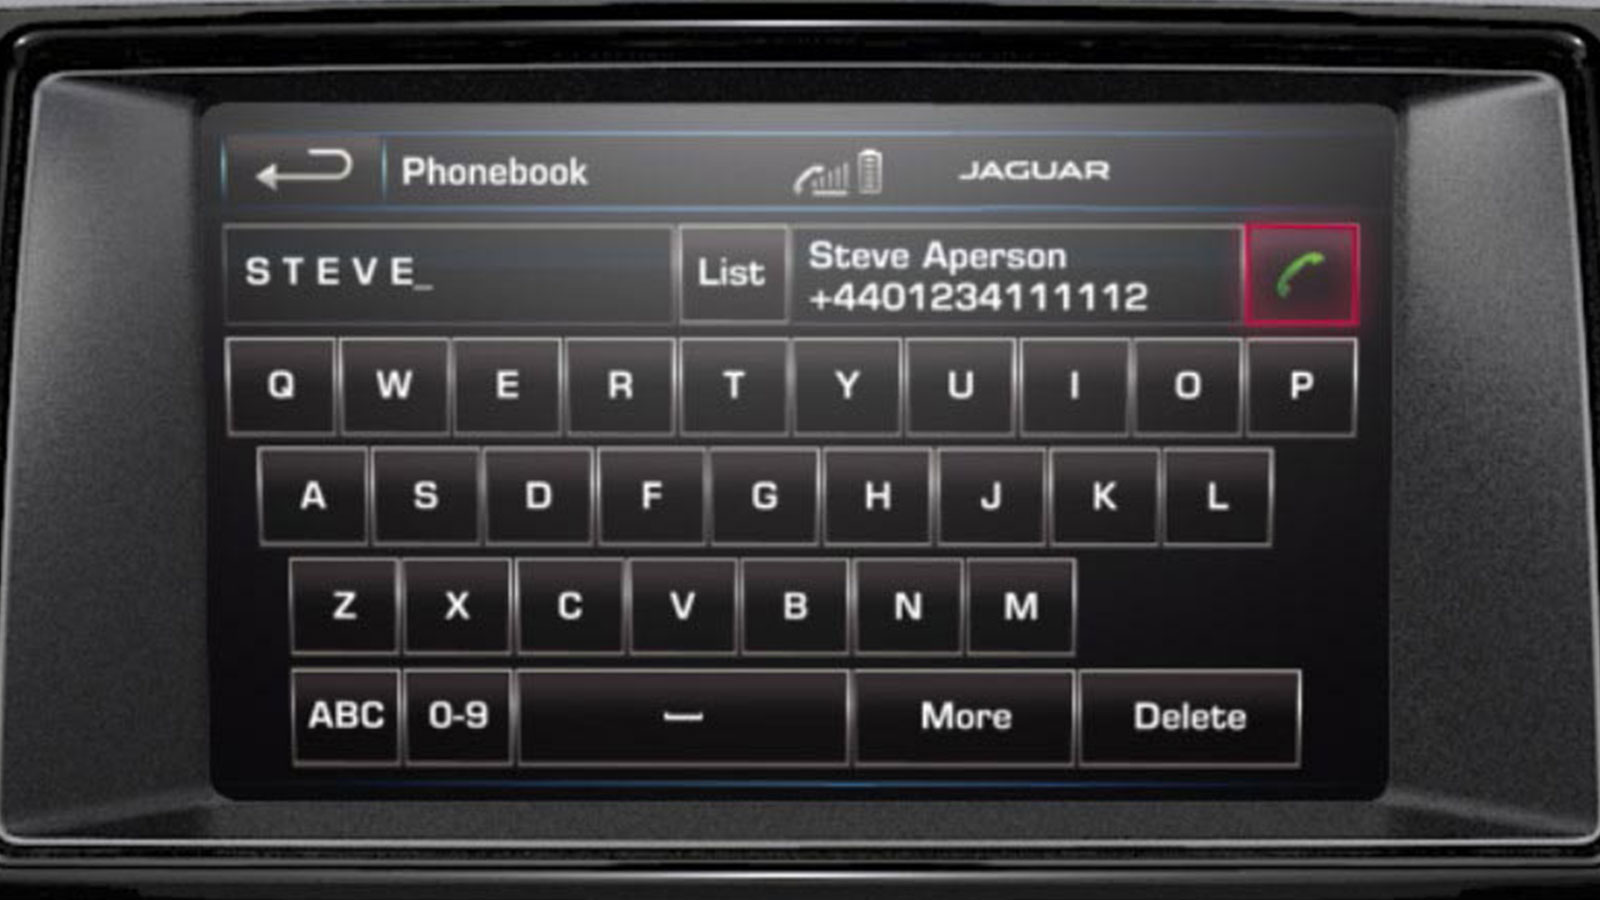 Jaguar F-Type Hands Free Phone Display.